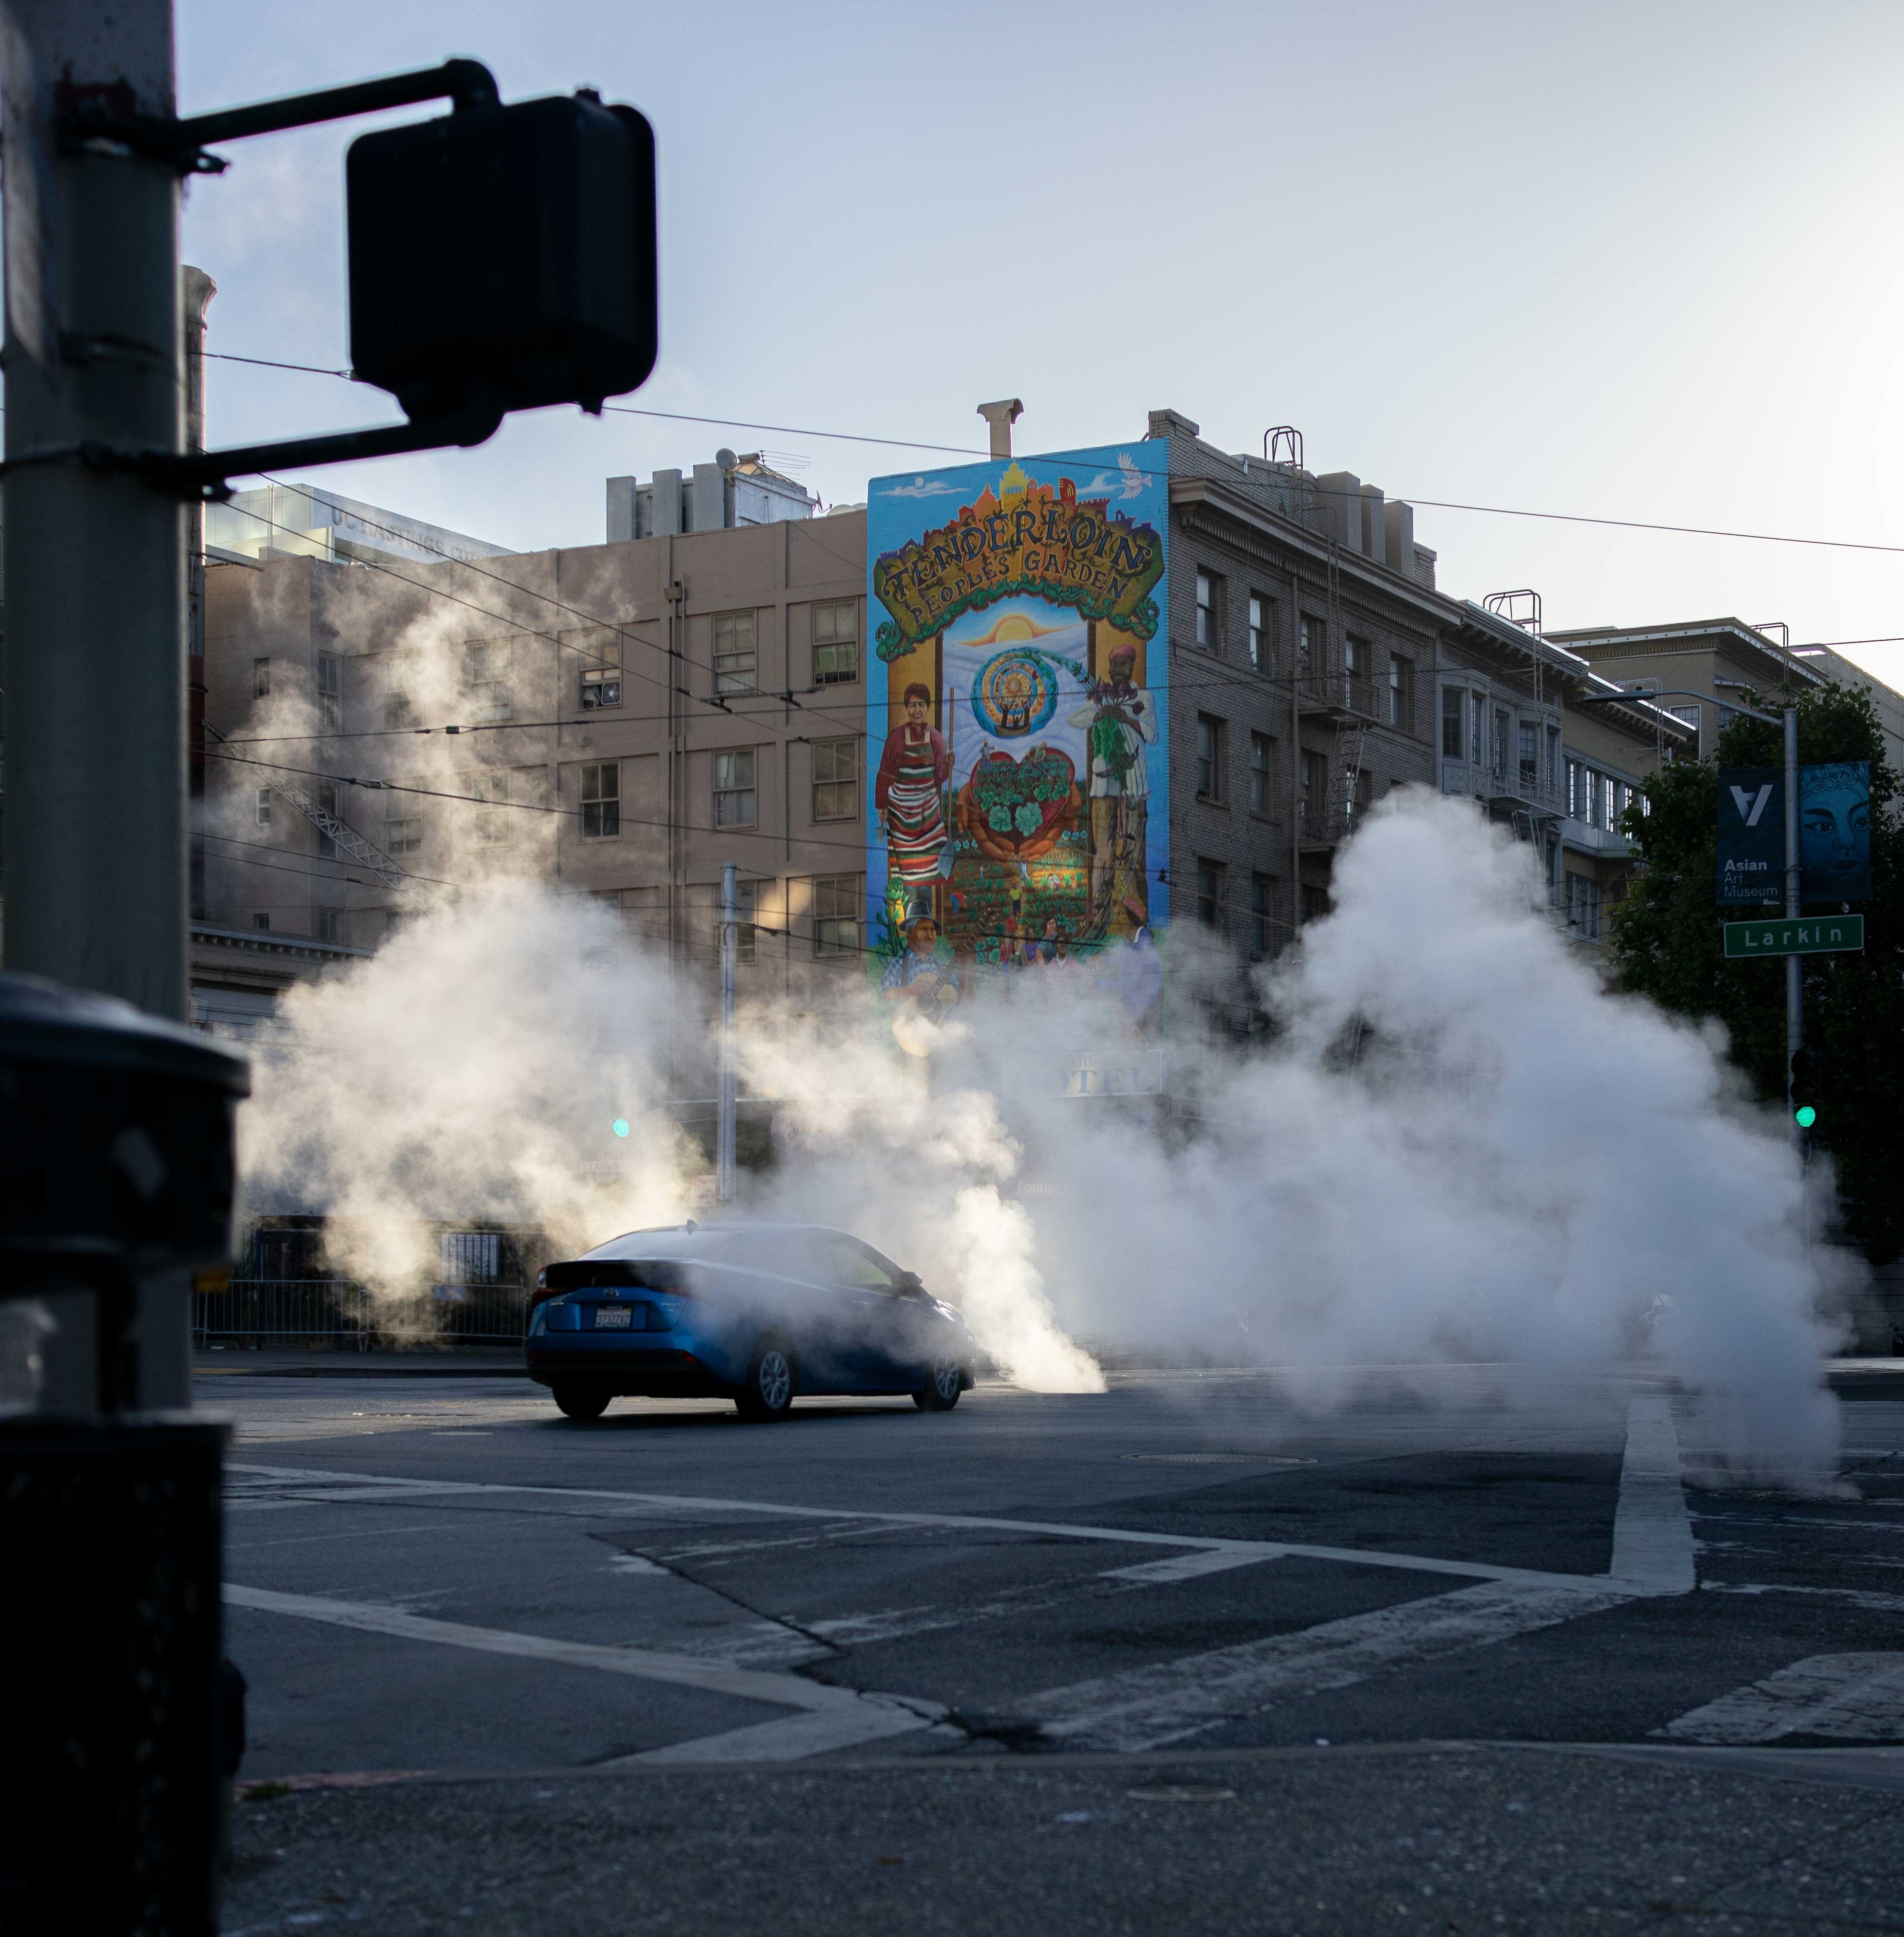 a black car surrounded by smoke in a city road